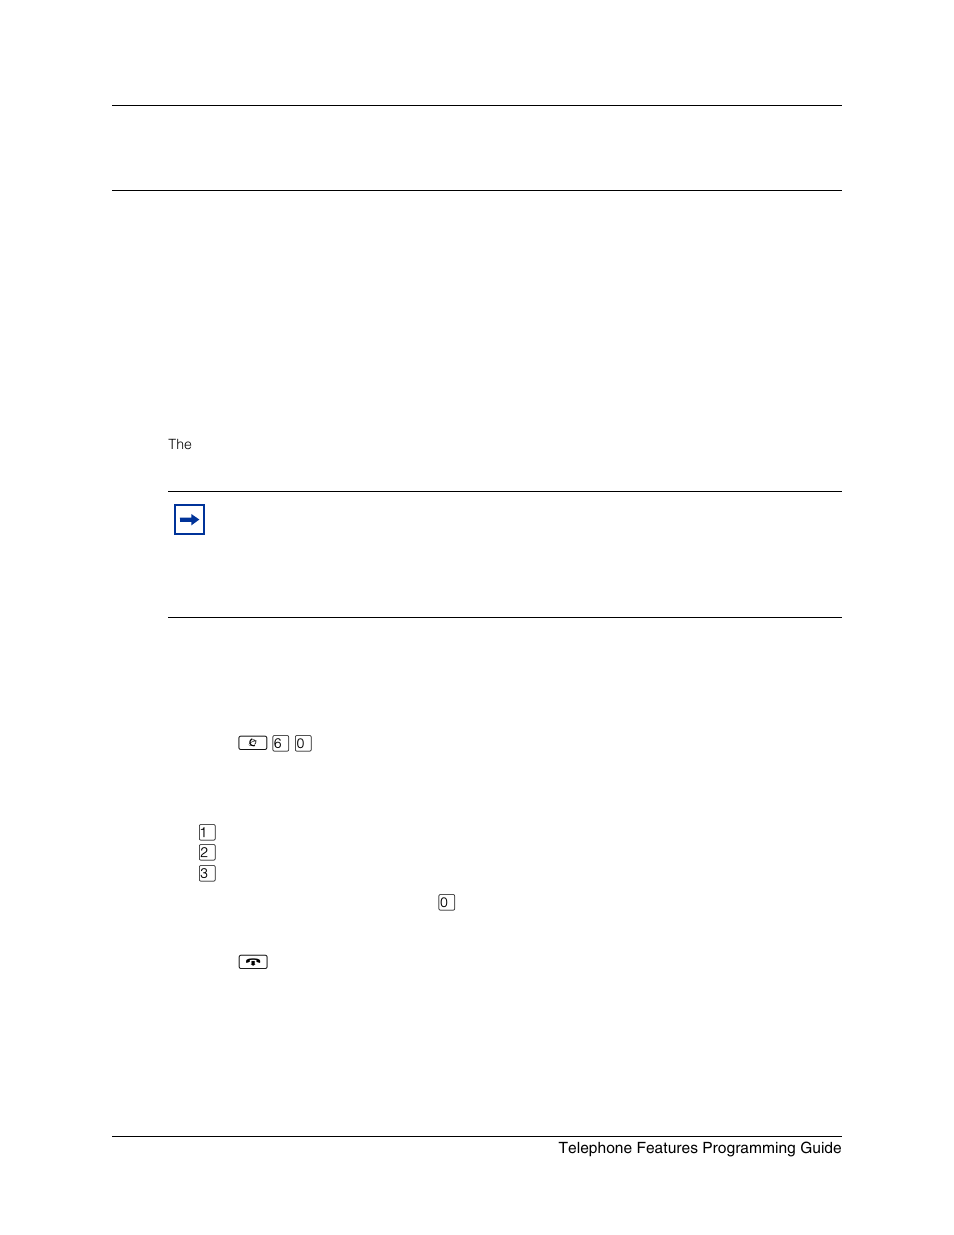 Chapter 7, Communicating in the office, Paging in the office